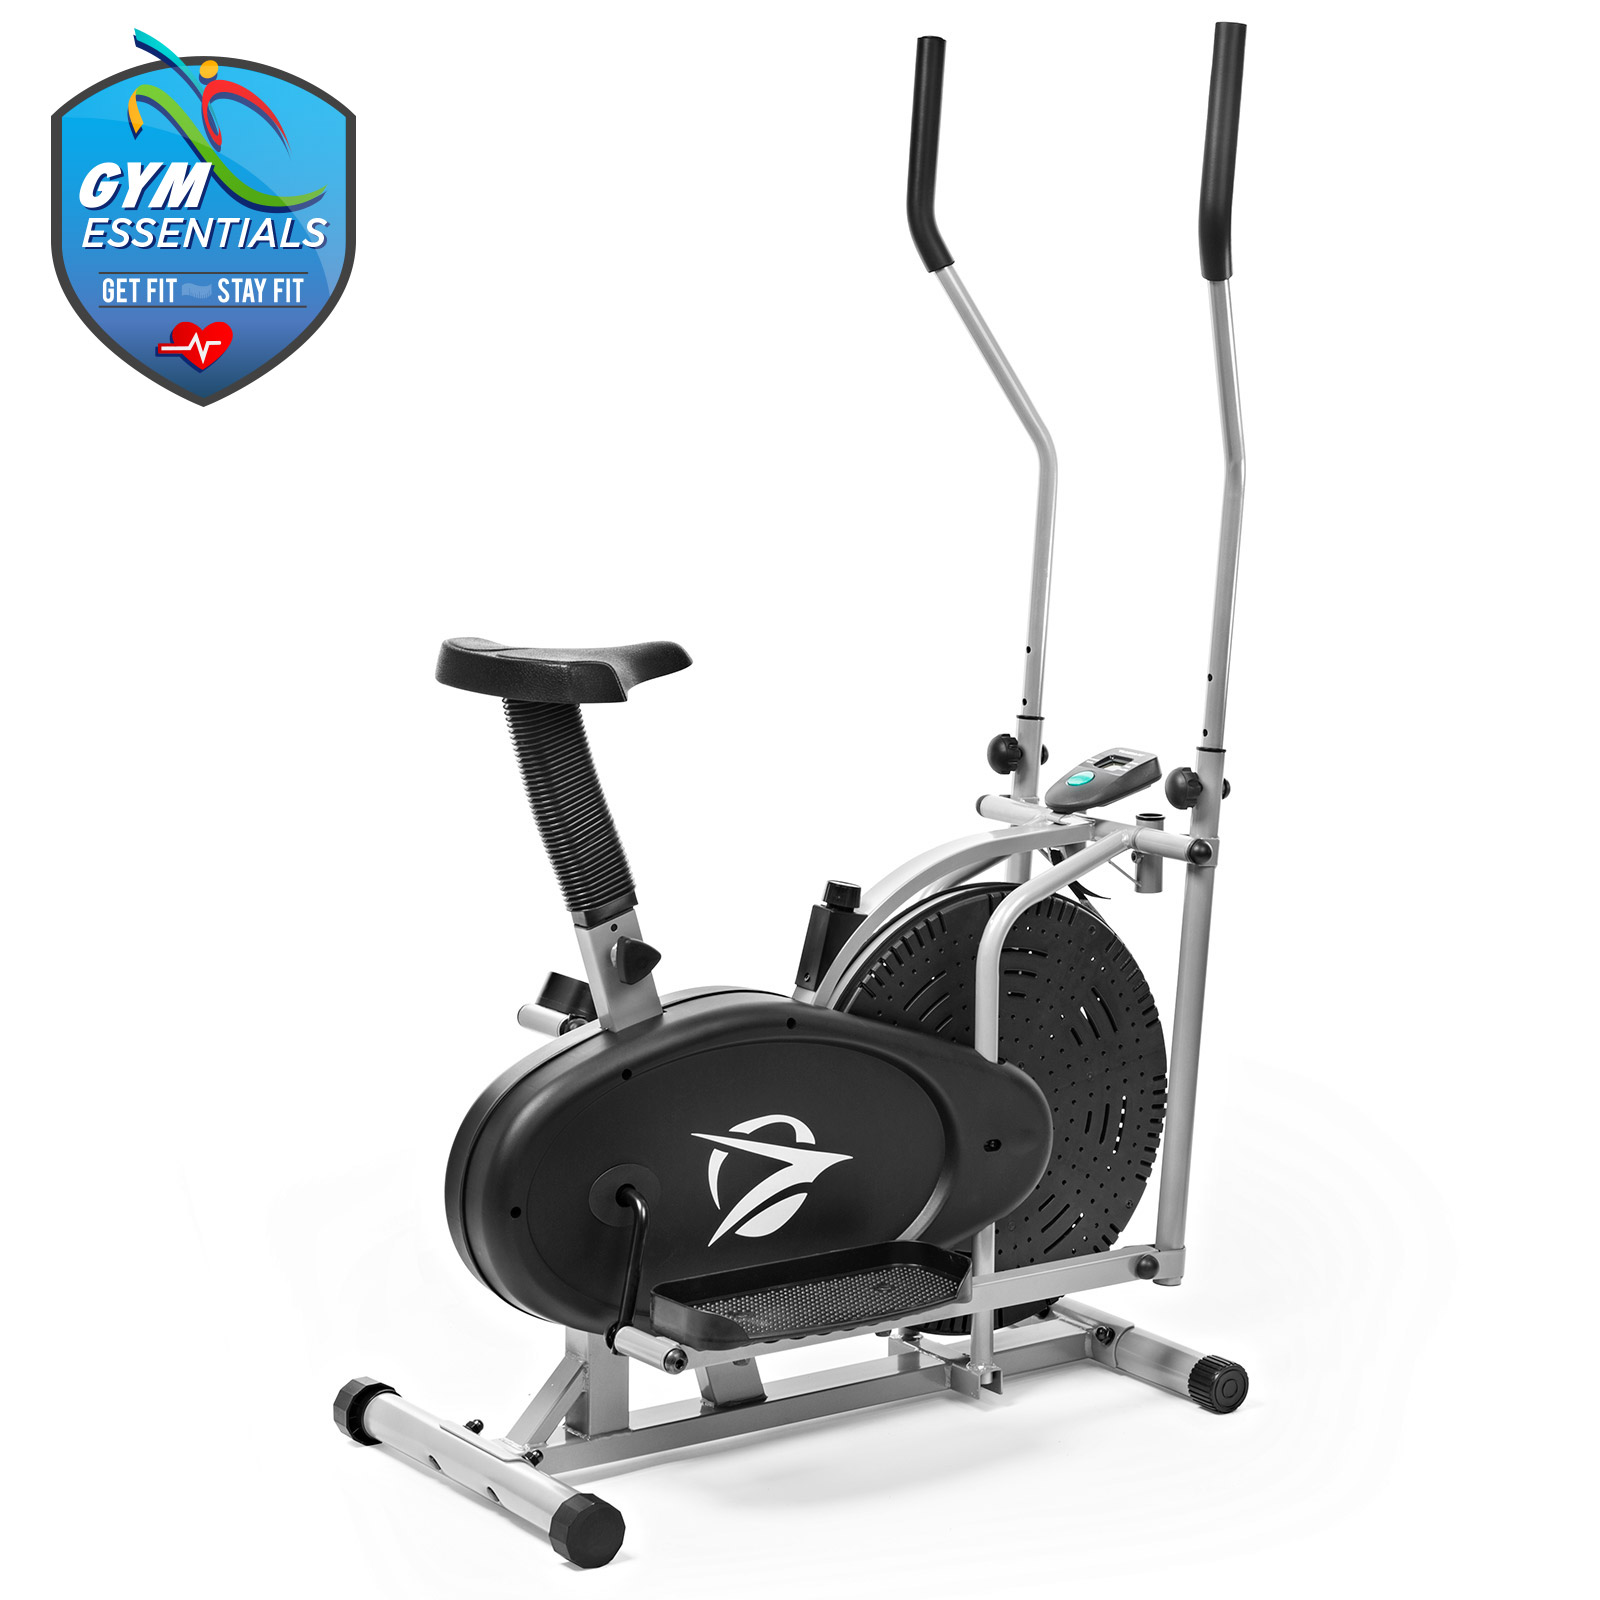 Elliptical Machine Trainer 2 In 1 Exercise Bike Compact